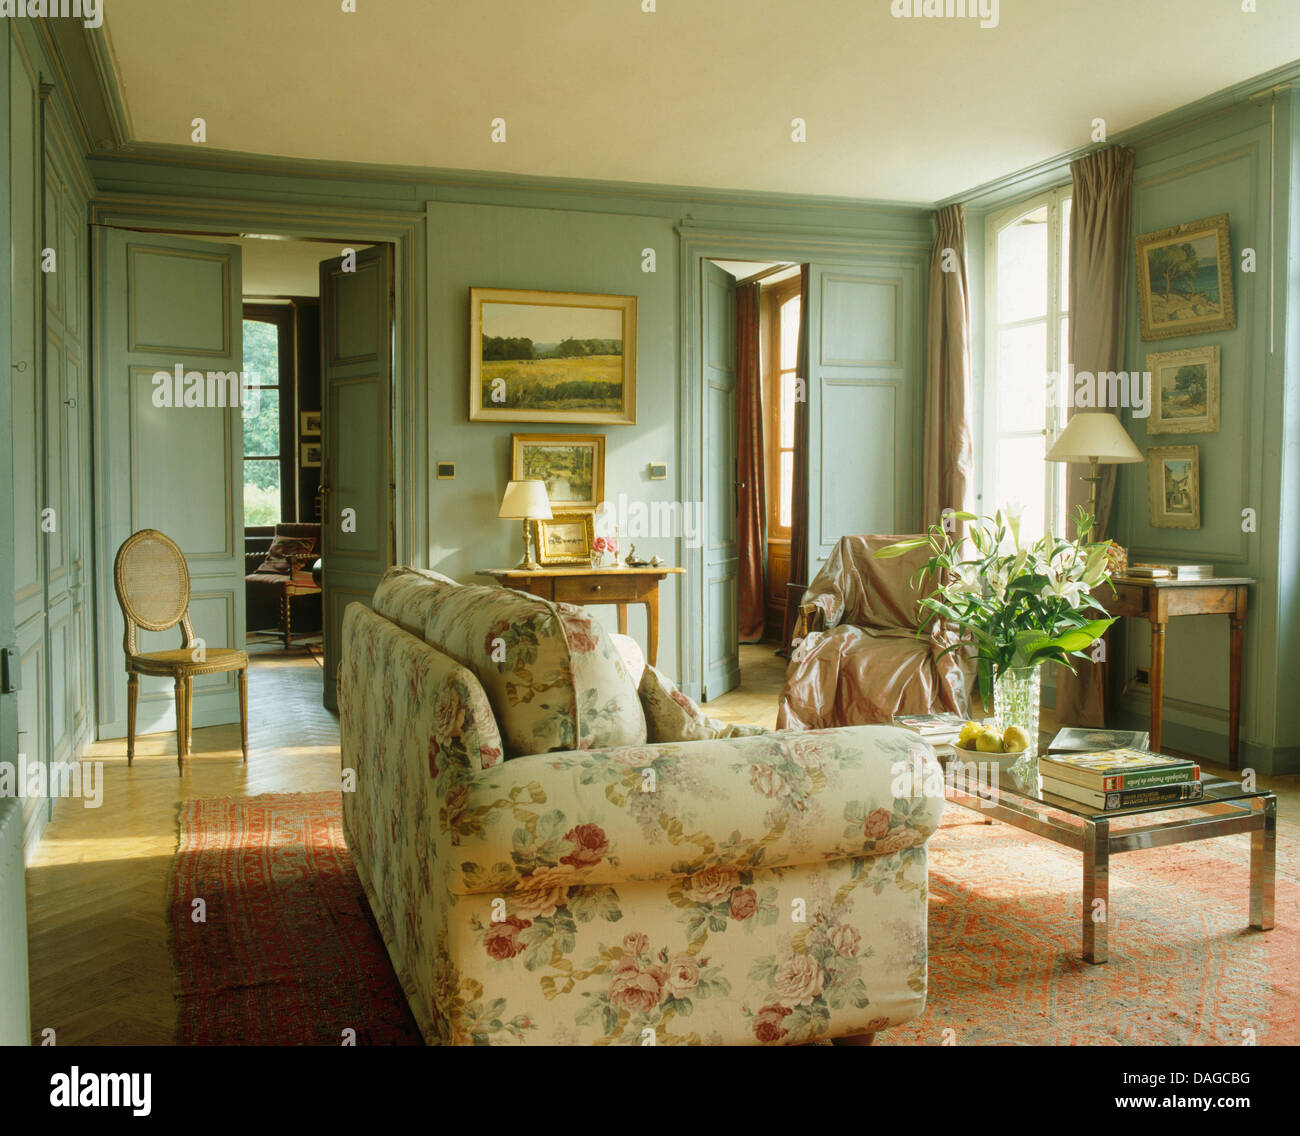 https://c8.alamy.com/comp/DAGCBG/floral-sofa-in-french-country-living-room-with-gray-green-painted-DAGCBG.jpg